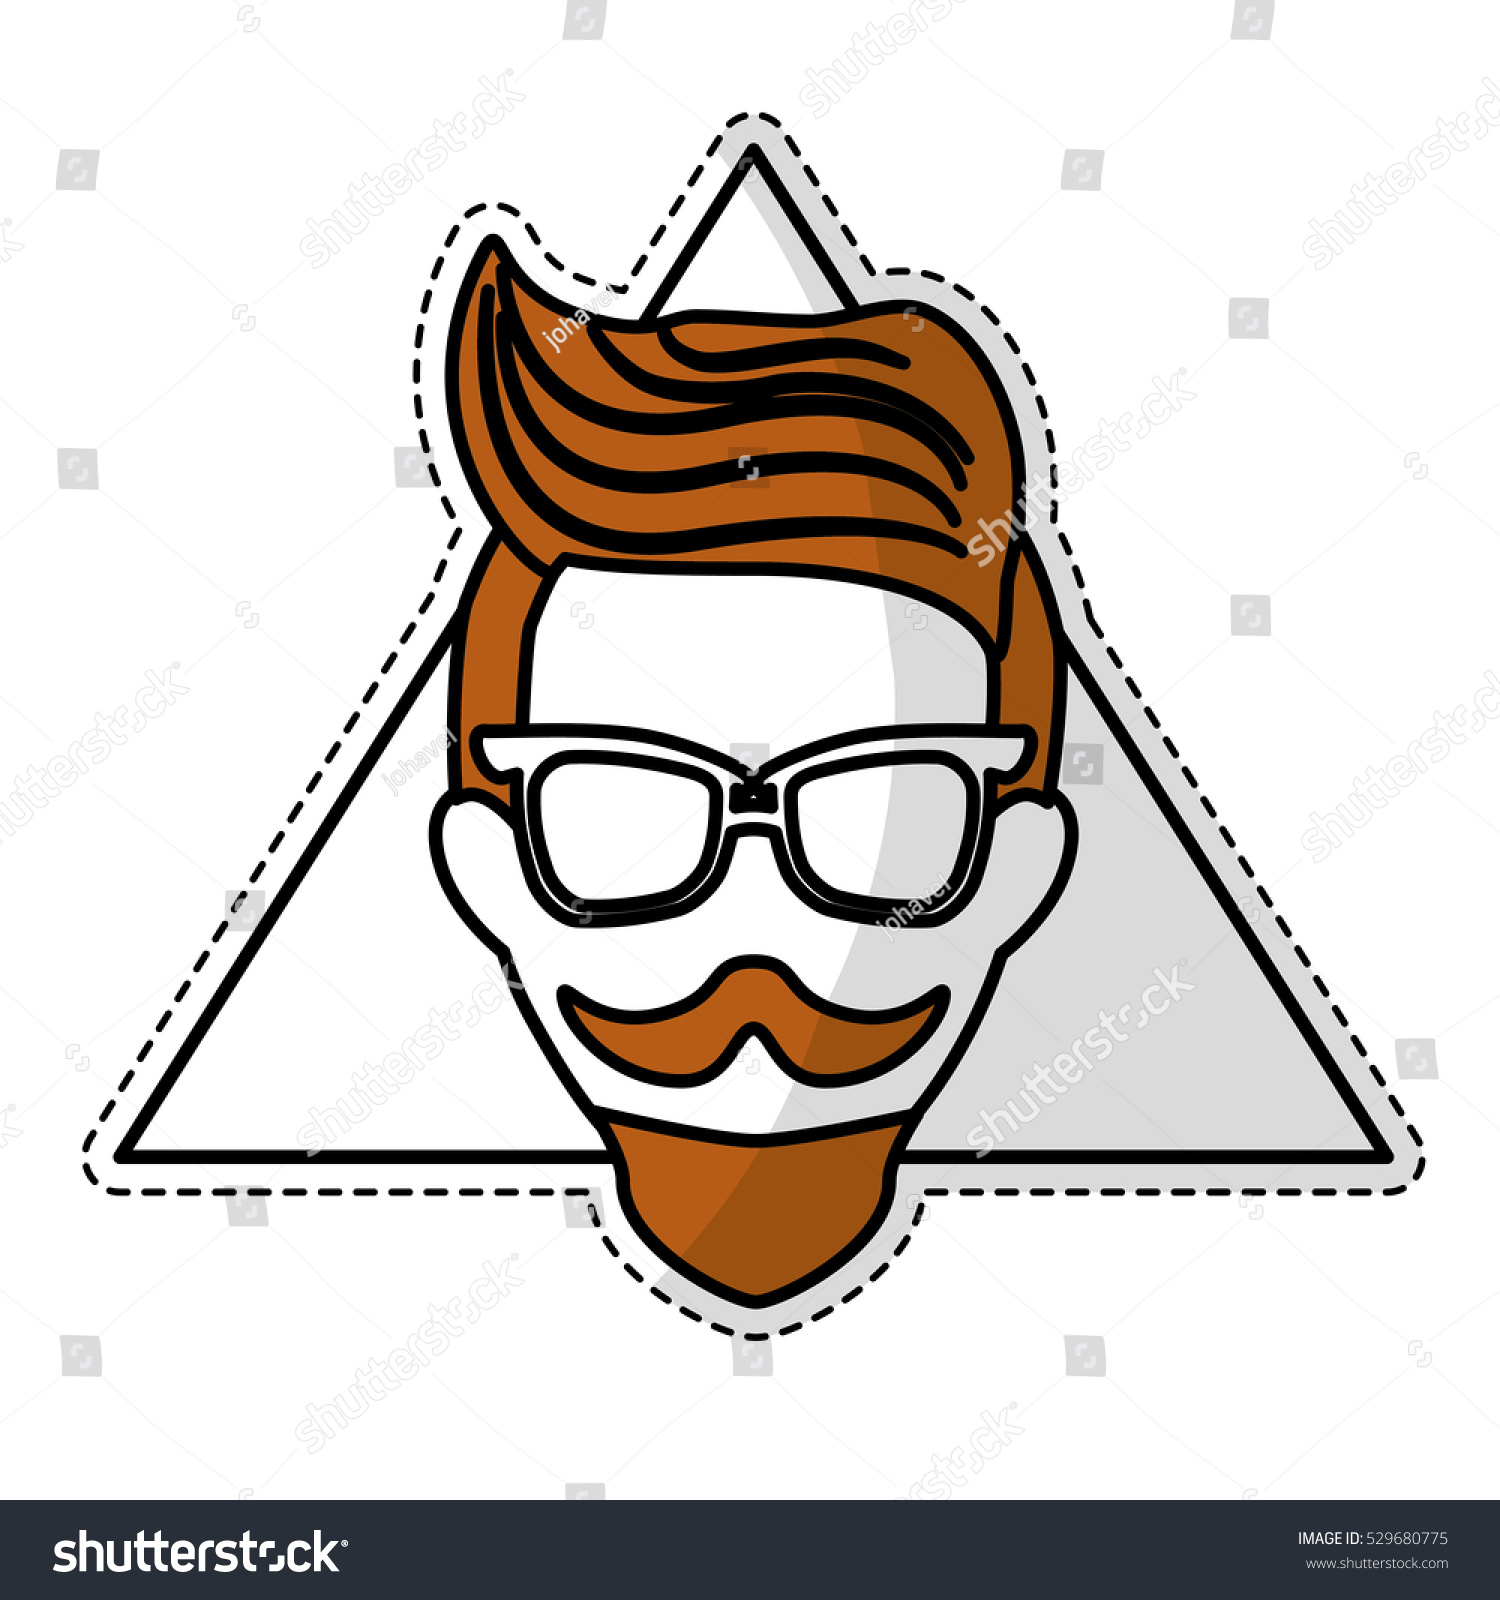 Sticker of man face with mustache and glasses over triangular frame and white background hispter